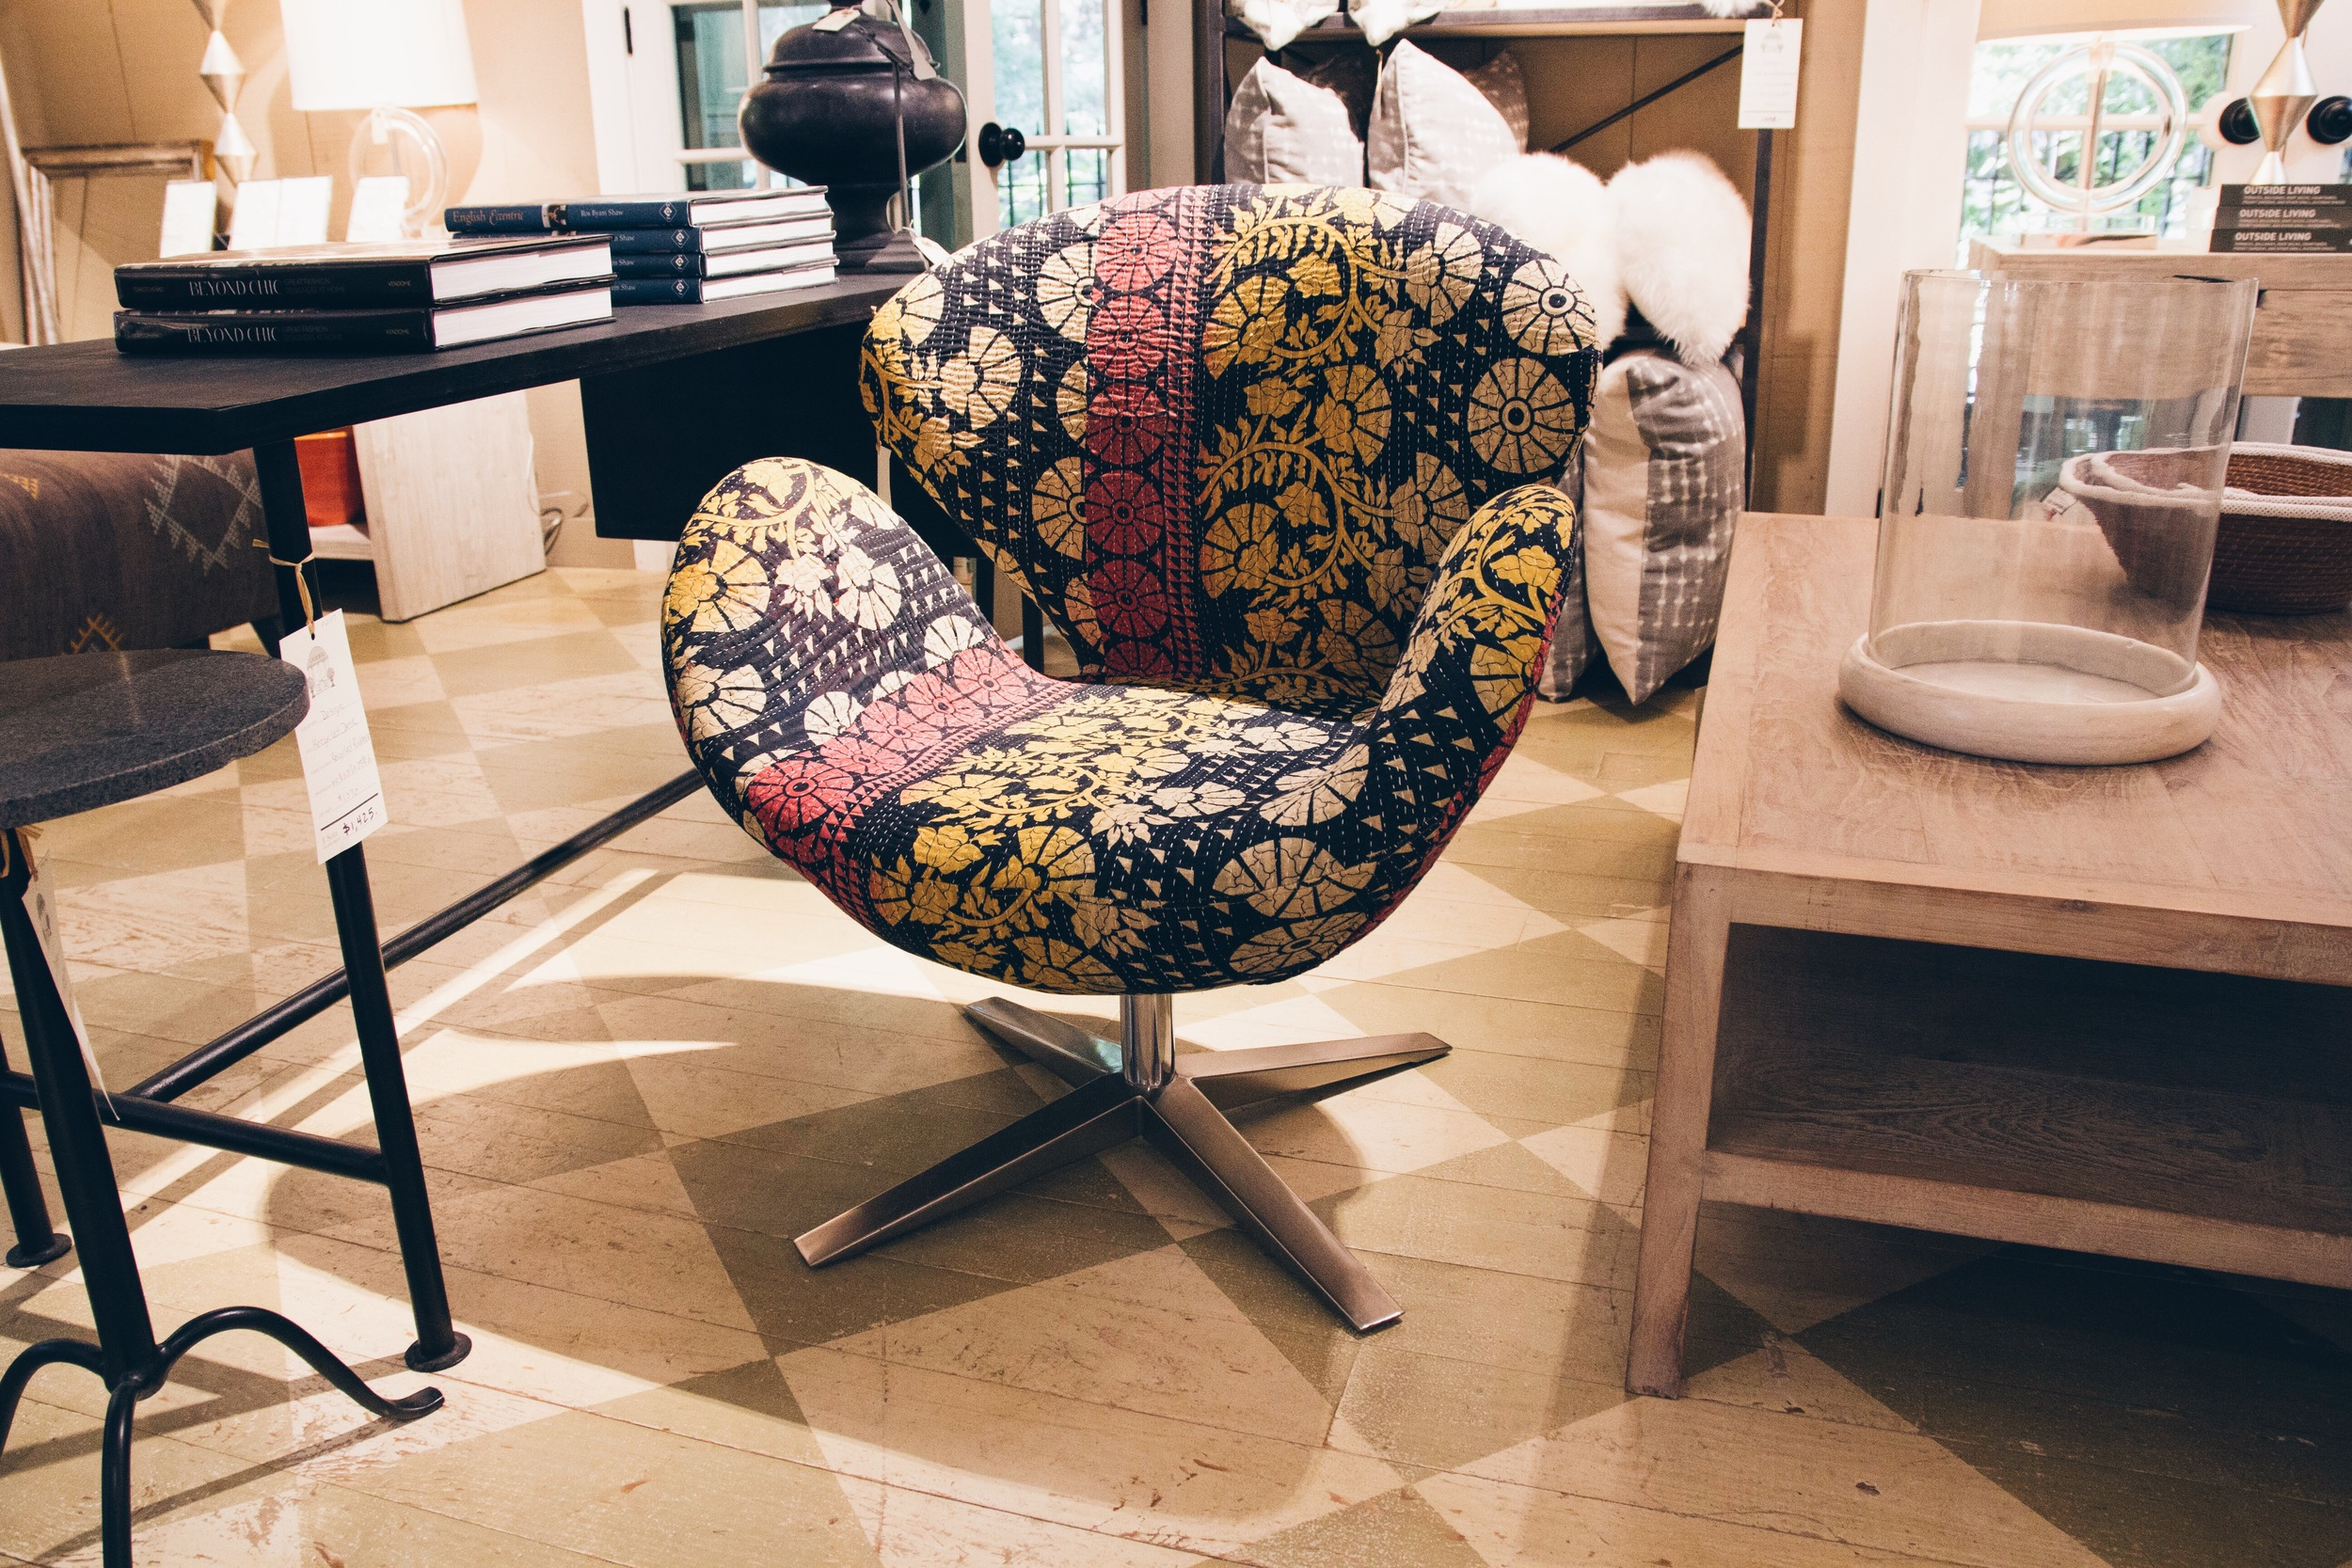 {I love this mid century chair reupholstered in a vintage kantha quilt}